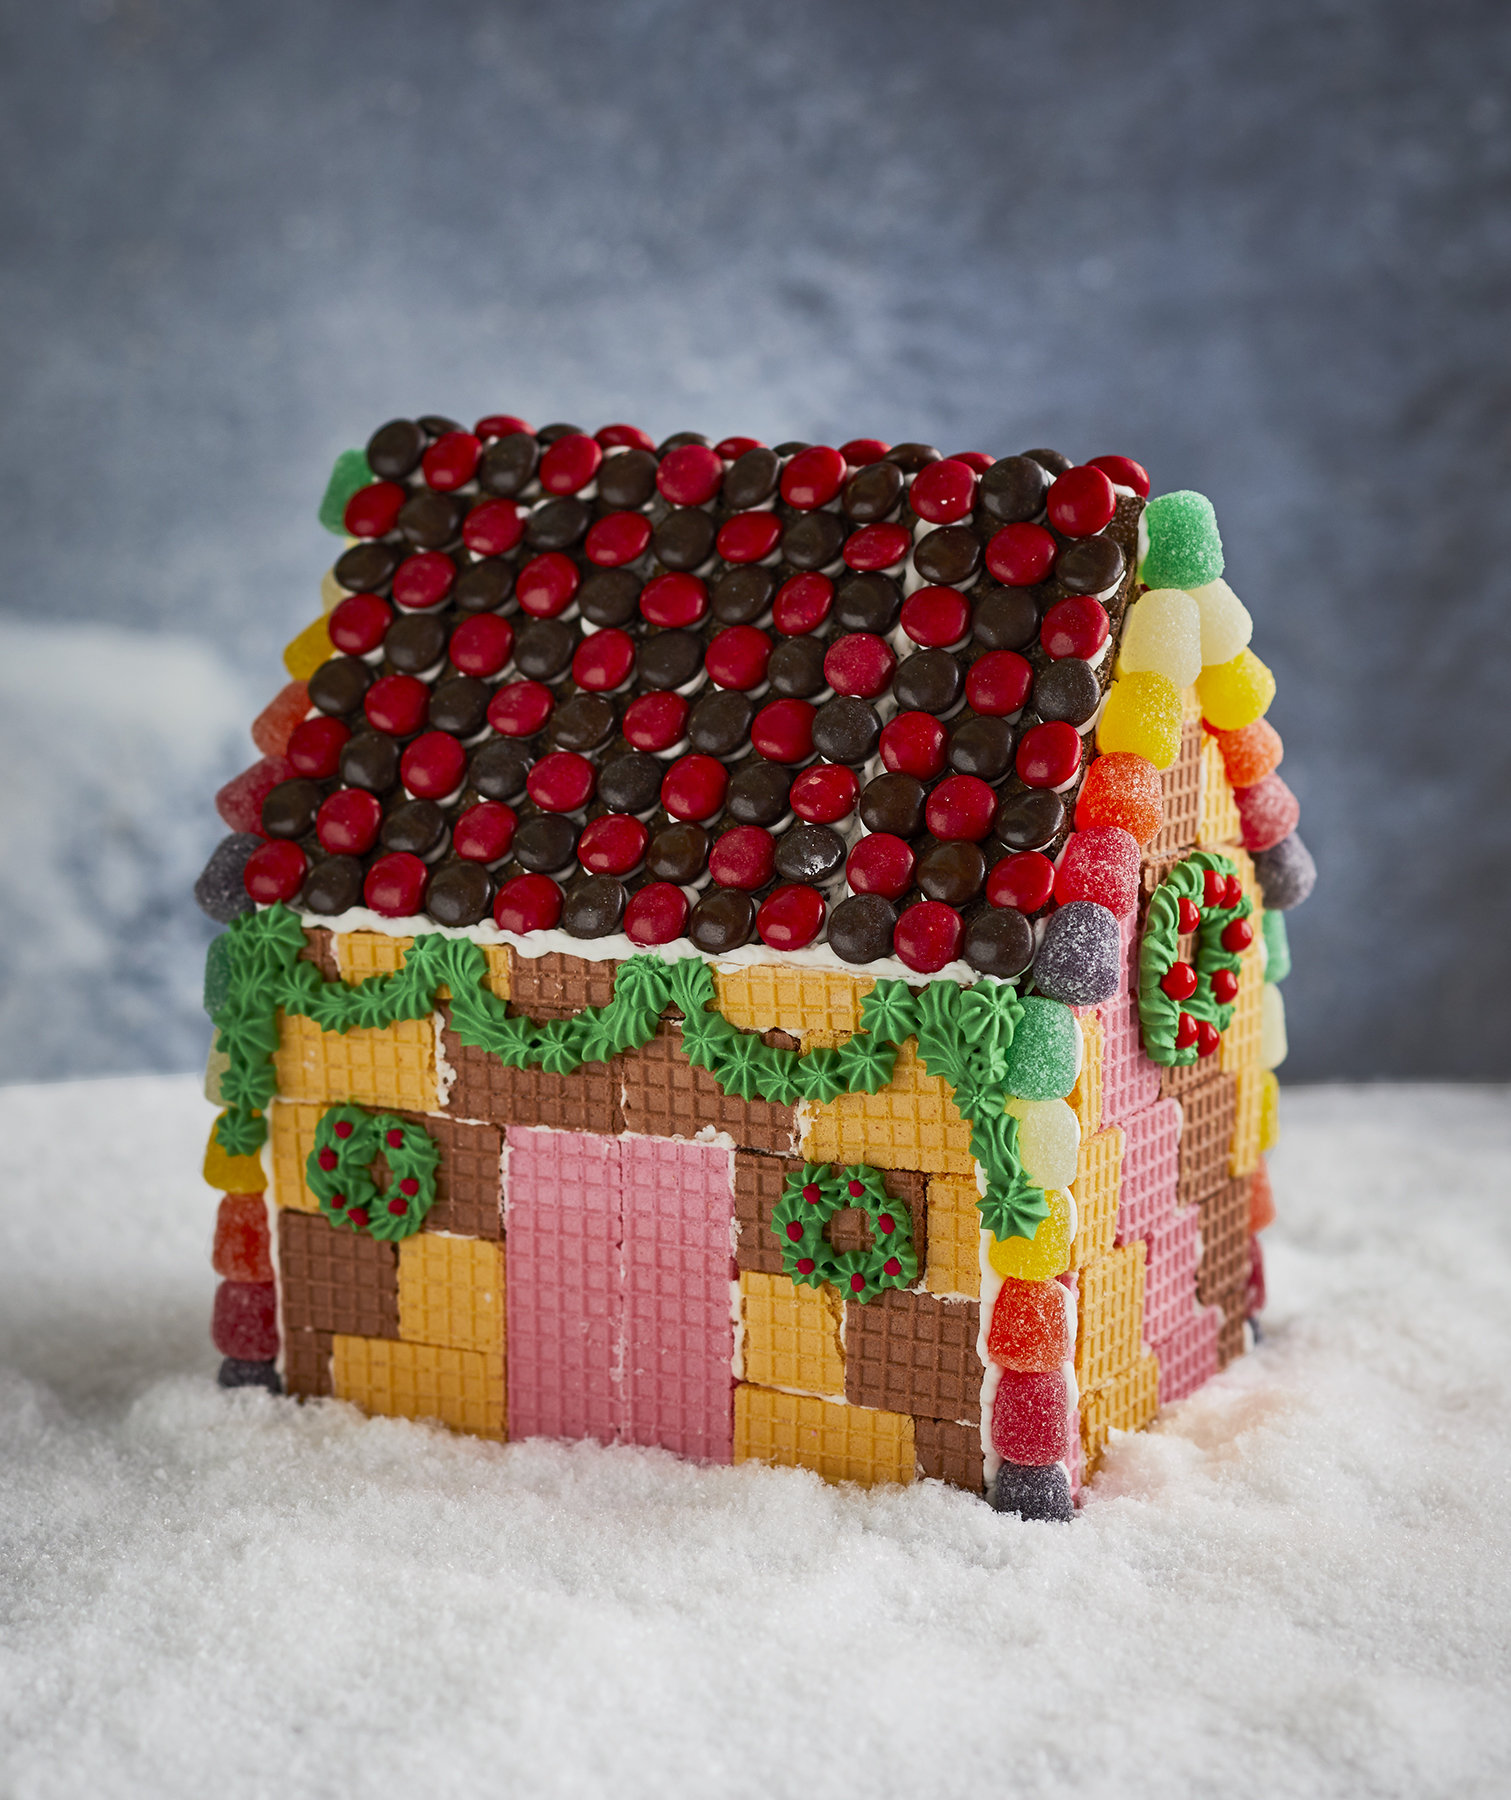 wafer-cookie-gingerbread-house